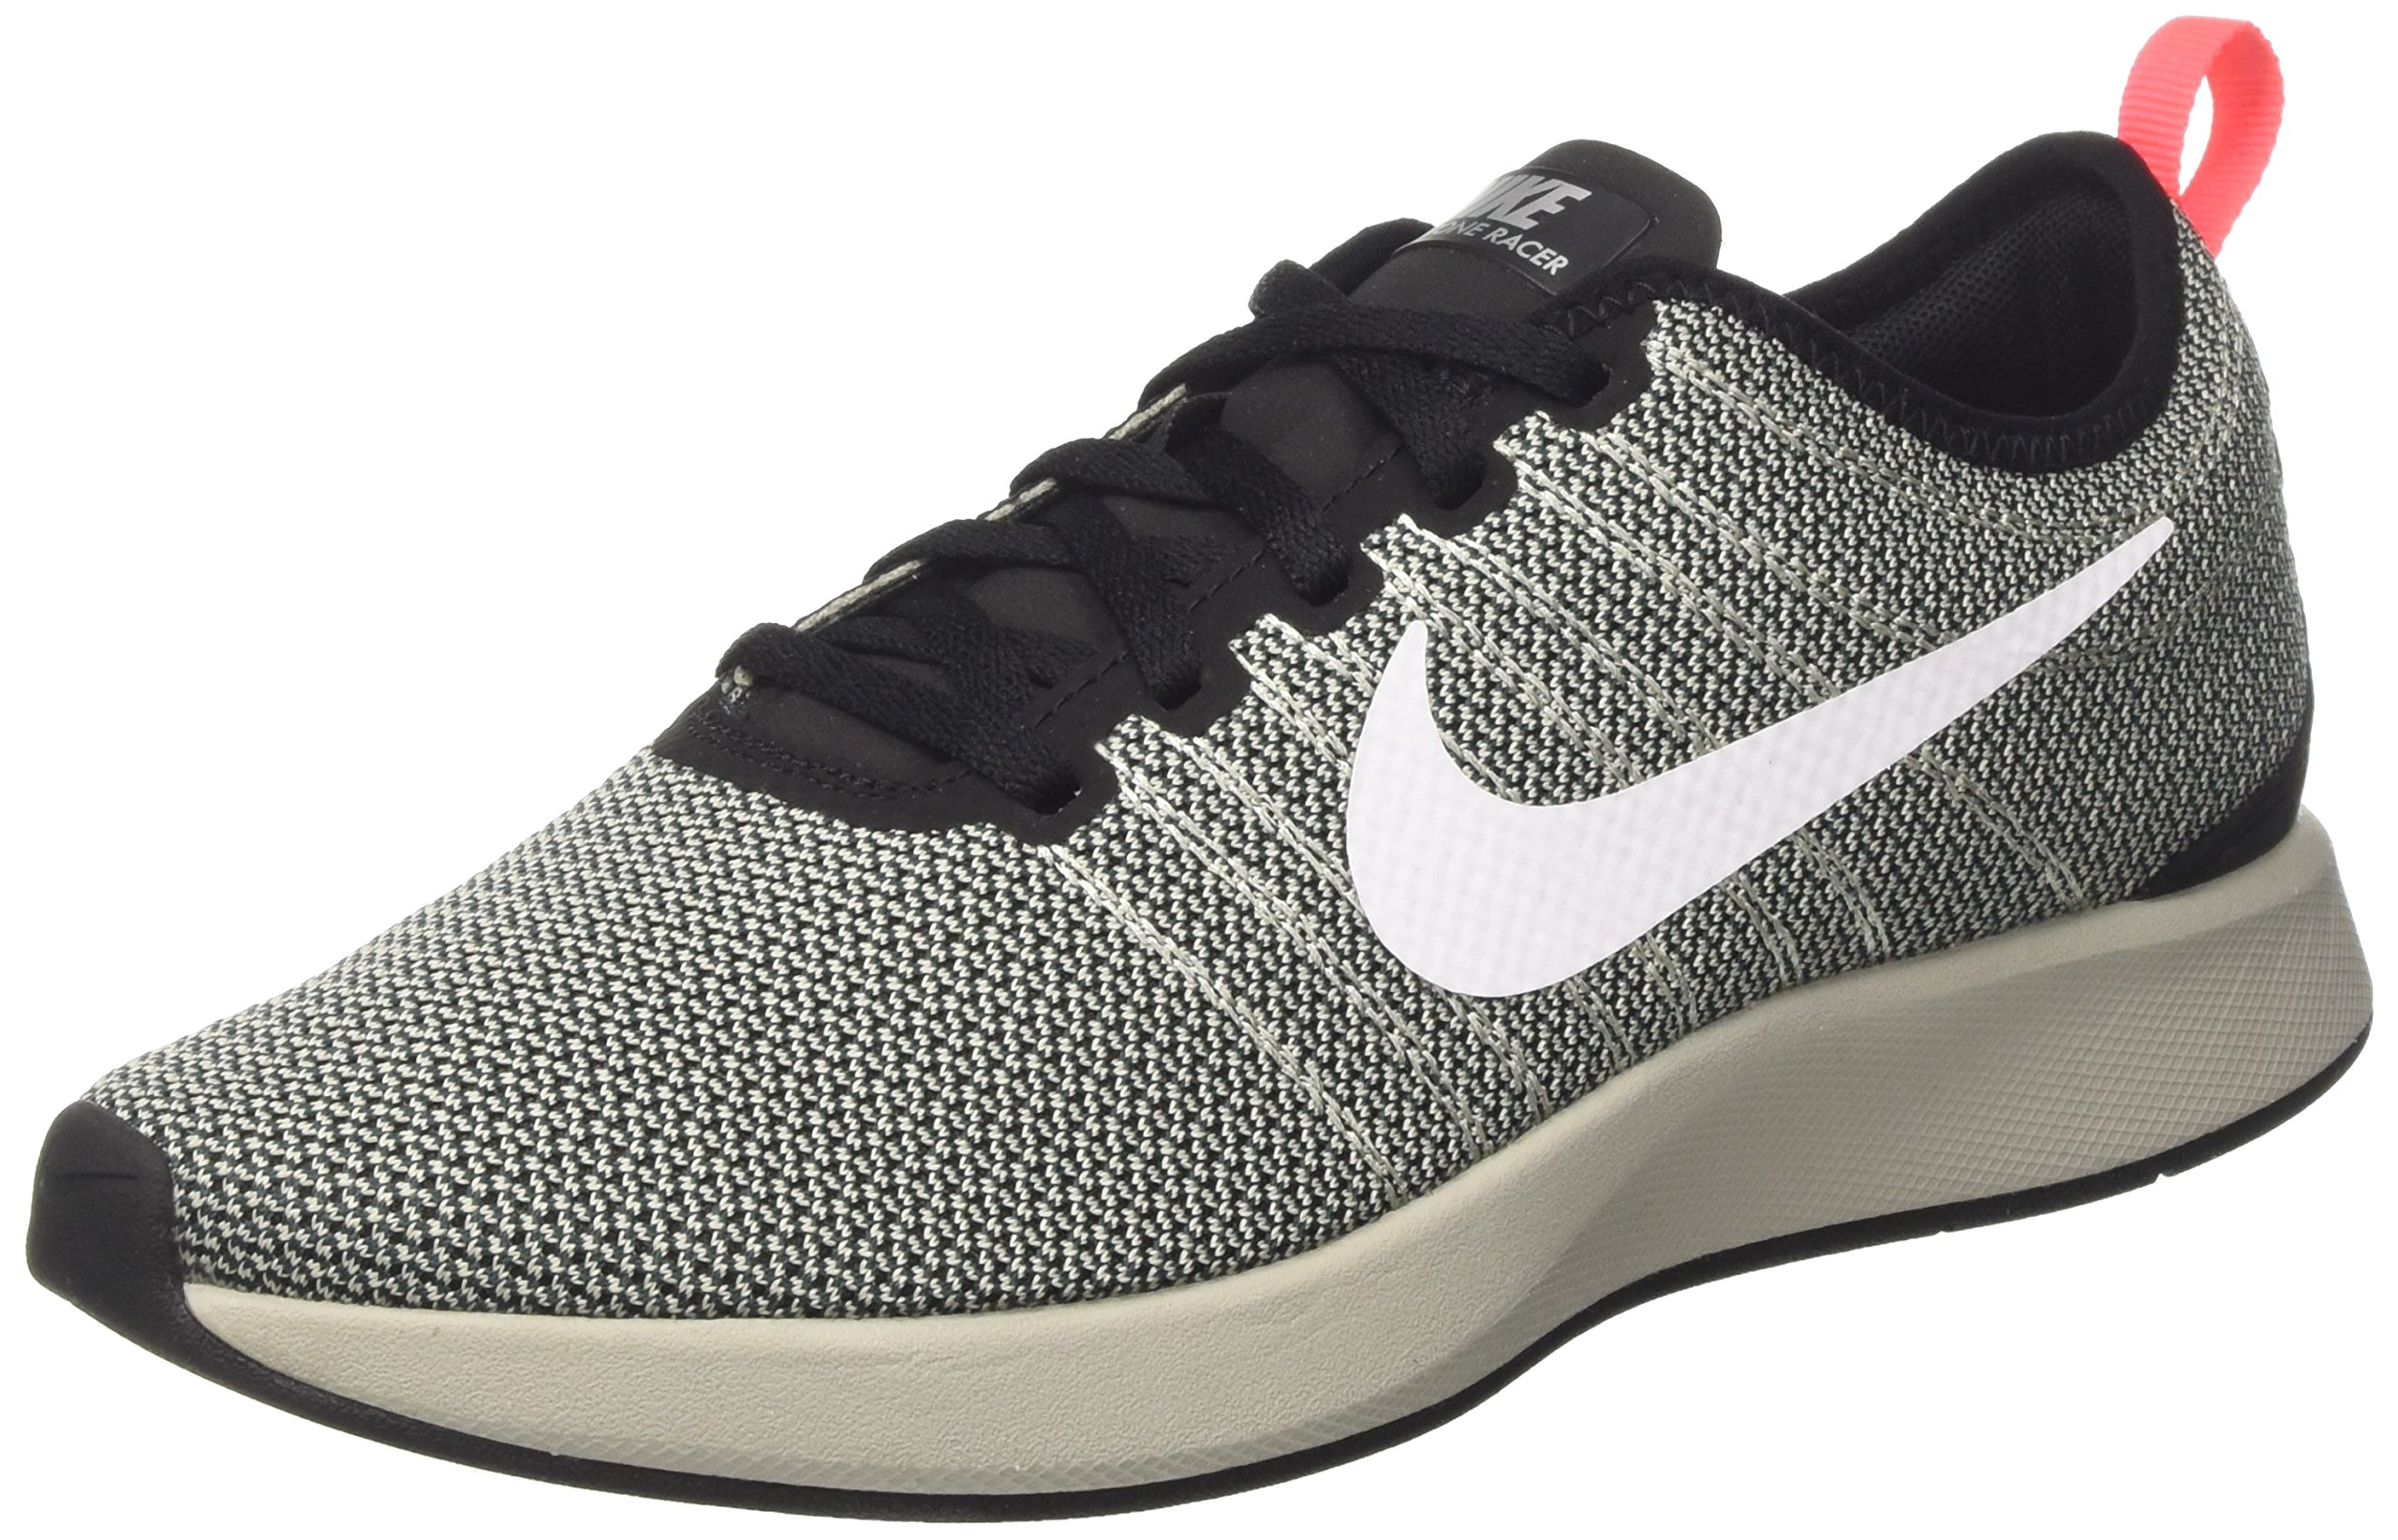 Nike Dualtone Racer Mens Running Trainers 918227 Sneakers Shoes (UK 6 US 7 EU 40, Black White Pale Grey 001)